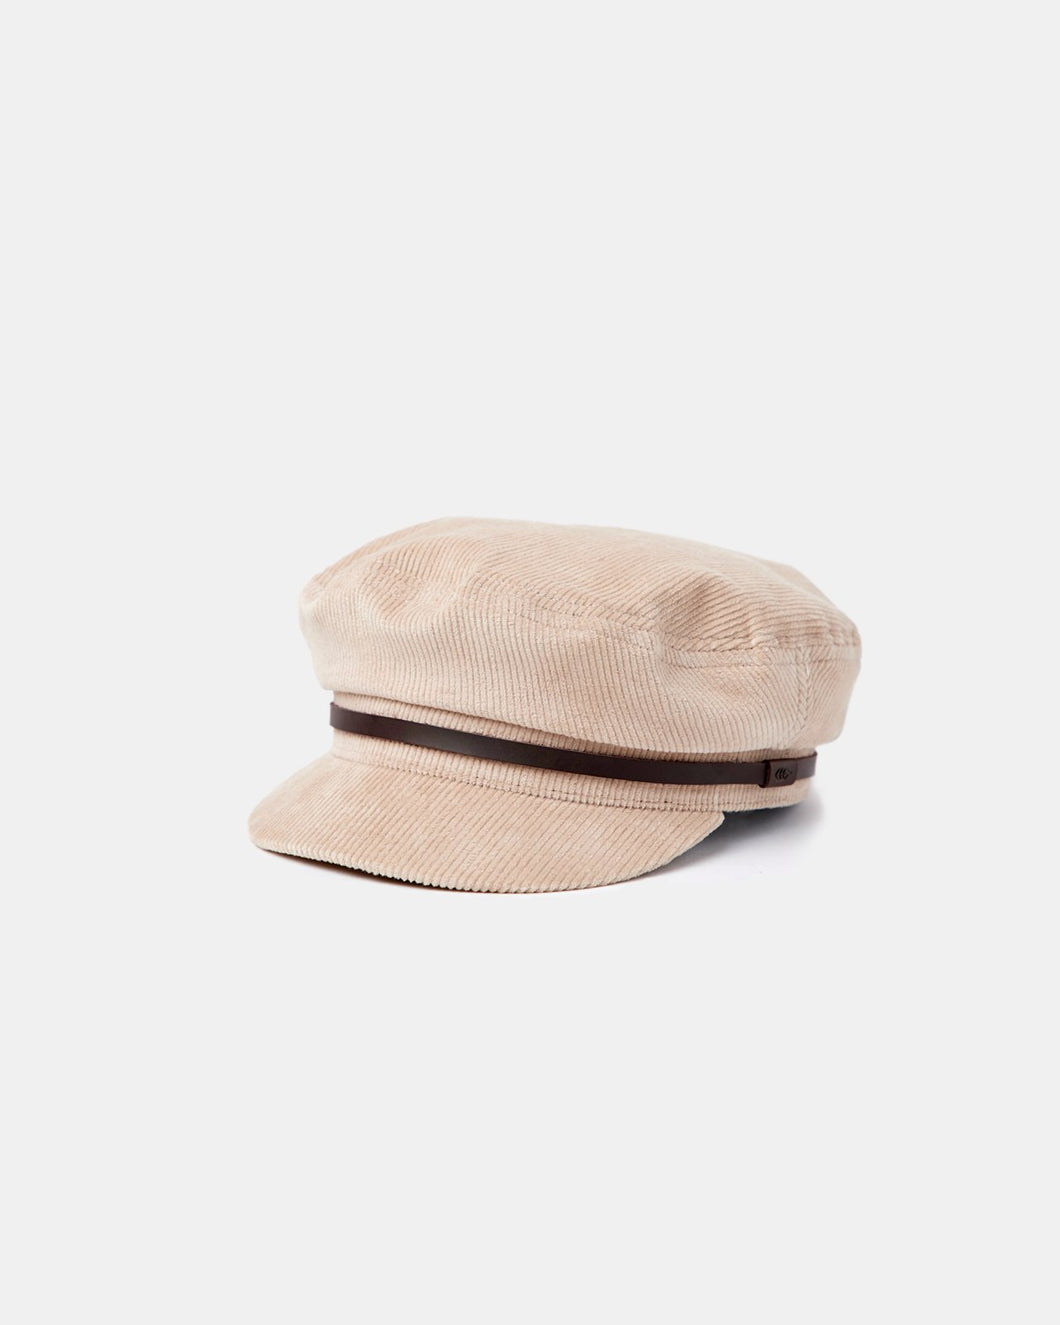 Will and Bear - Baker Cap - Fawn - Folkstore Fitzroy